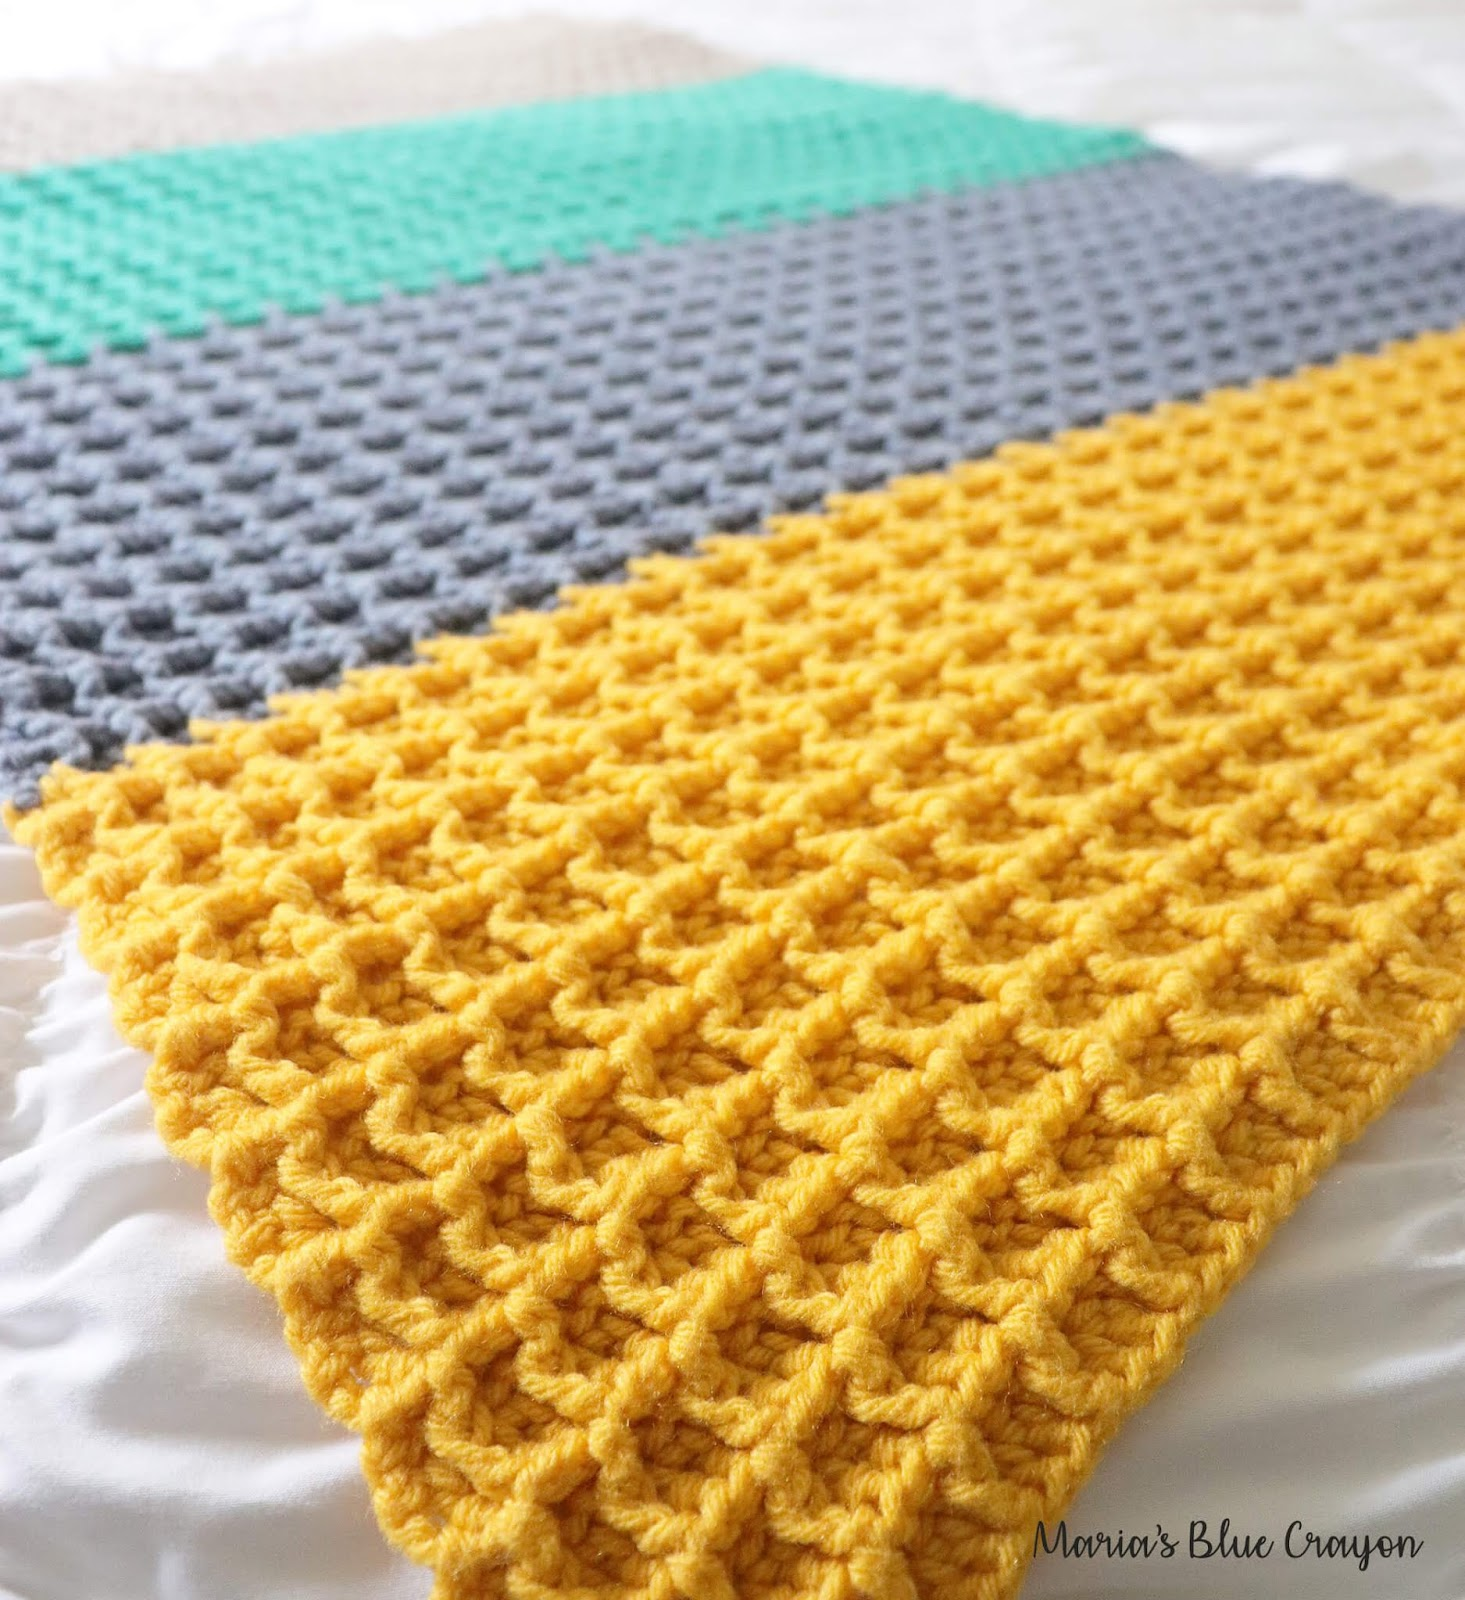 Color Block Crochet Blanket Free Crochet Pattern Marias Blue Crayon